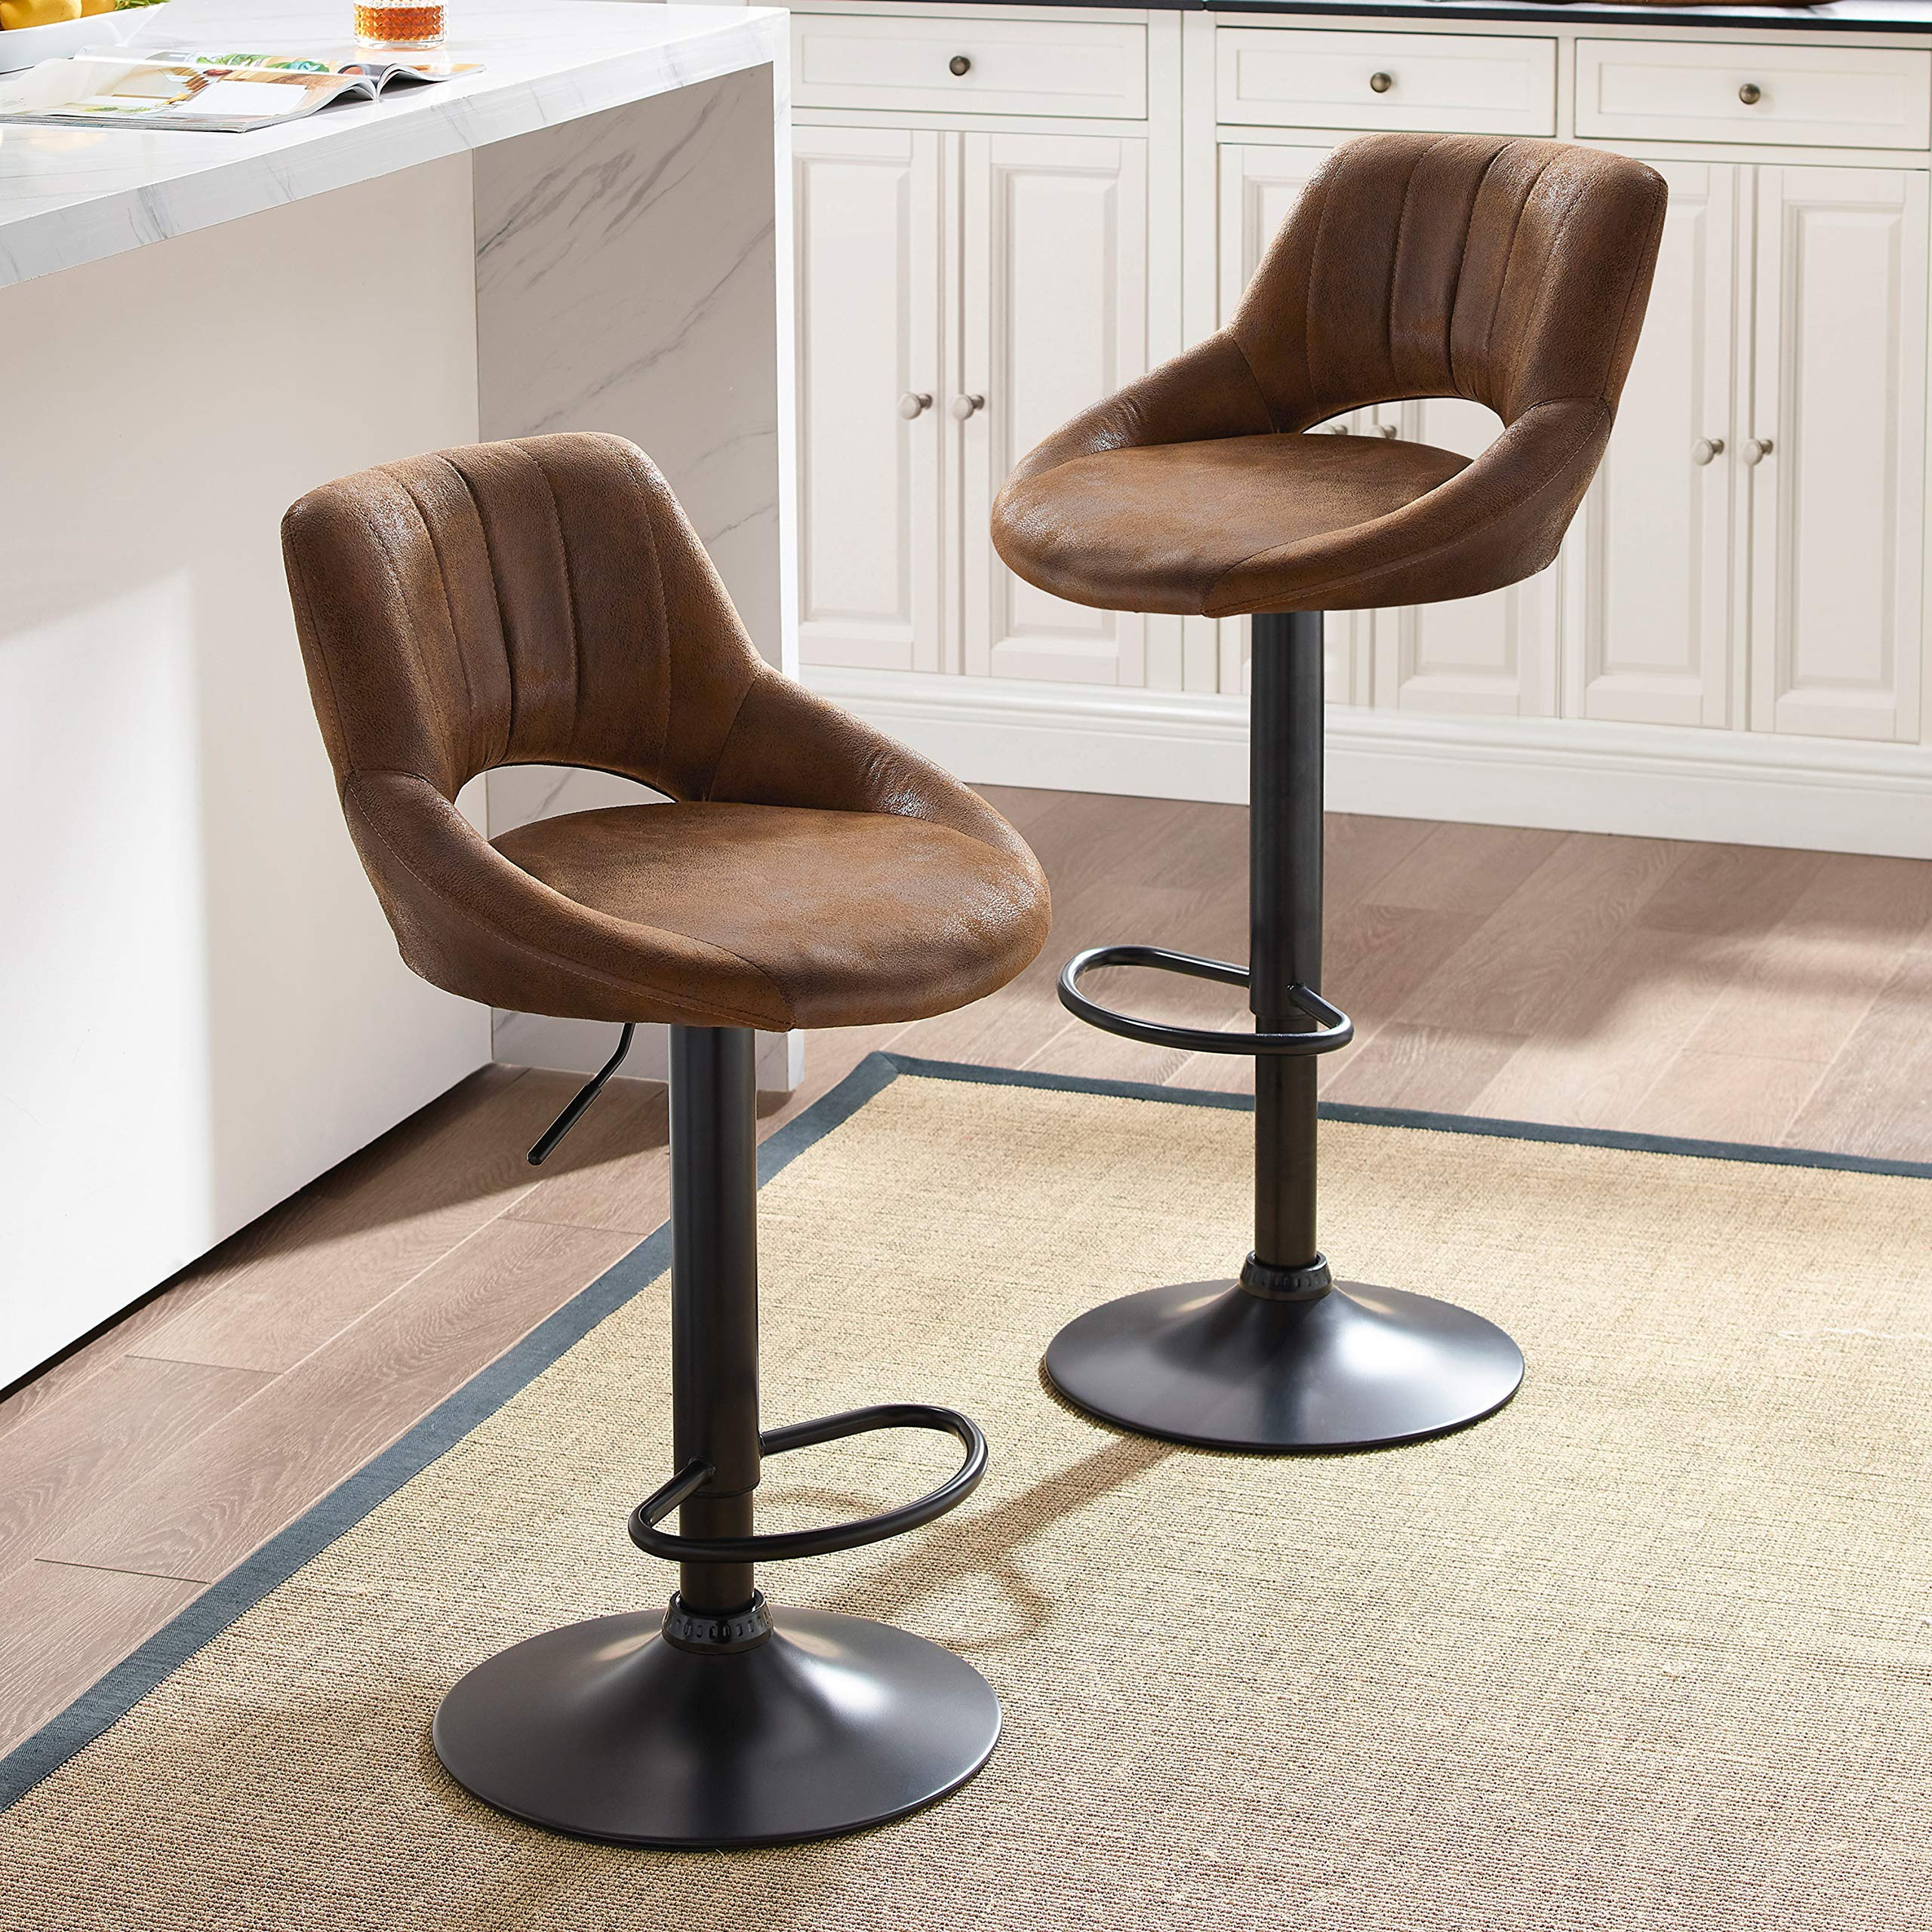 Art Leon Modern Retro PU Leather Adjustable 360 Swivel BarStools Chair Set of 2 with Open Backrest Black Powder Coated Gas Lift and Footrest (Brown)